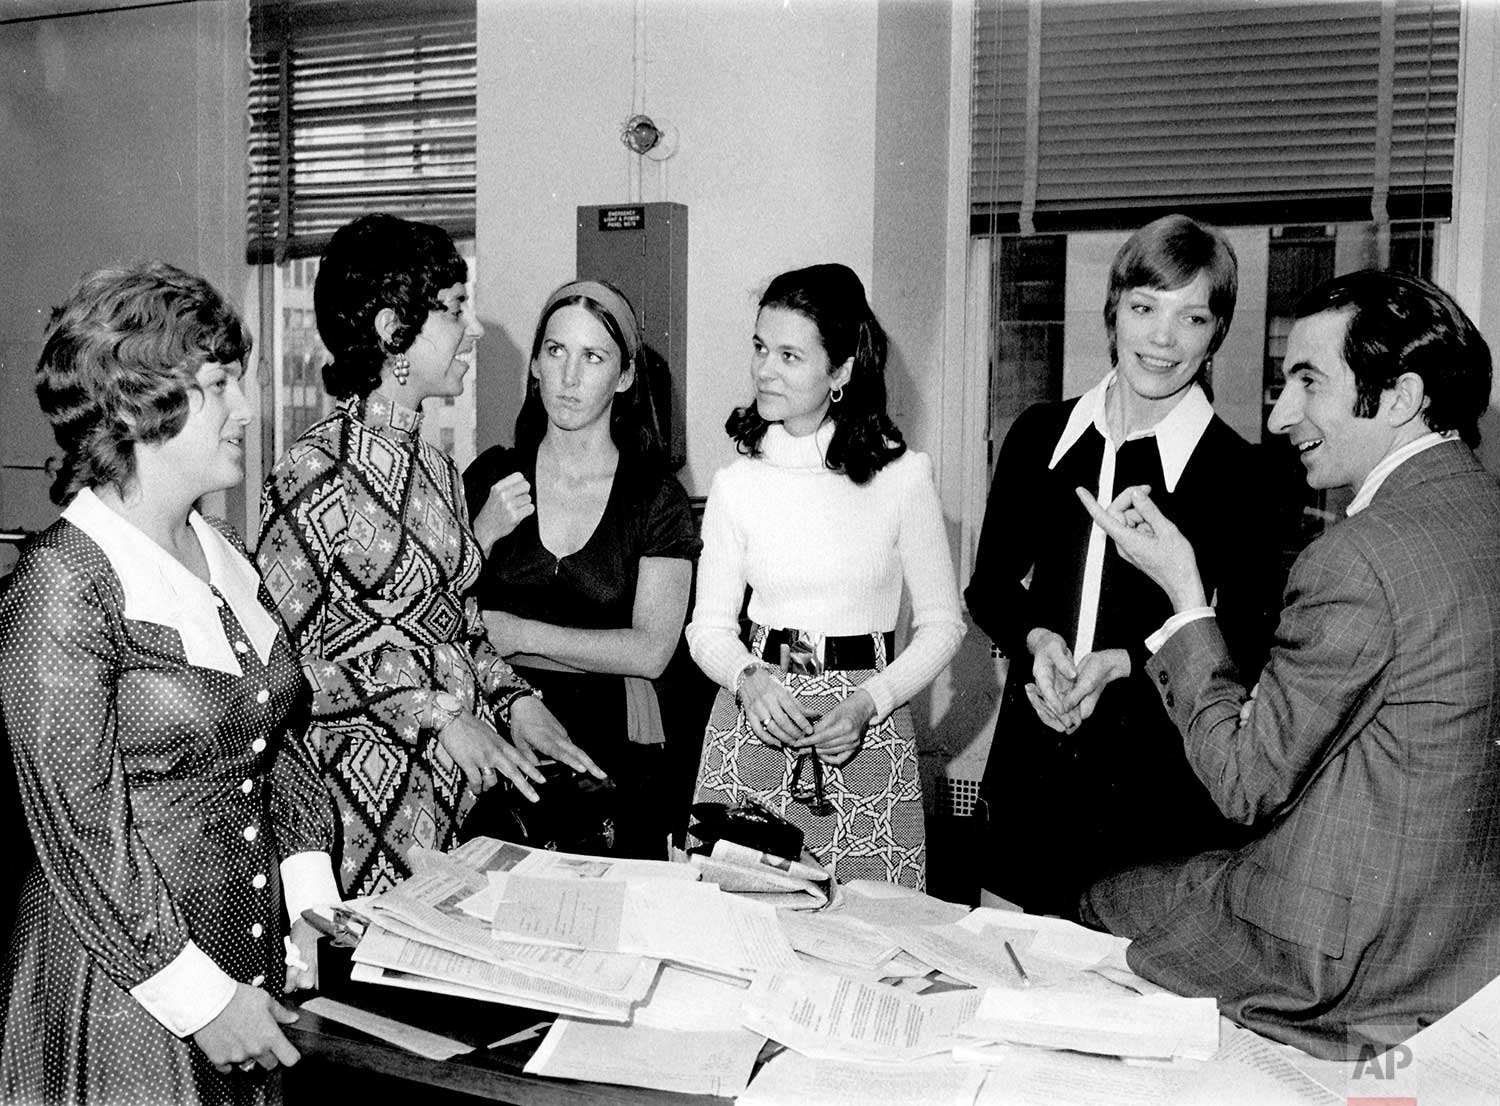 """AP newswomen were briefed by AP Managing Editor Lou Boccardi, during an orientation visit to the AP General Office in New York. AP World, the employee magazine, will announce in its next issue that the term """"newswoman"""" will be used in the future to describe women reporters. Heretofore male and female writers all were classified as """"newsman."""" From left: Jackie Snyder, Pittsburgh bureau; Debby Rankin, Chicago; Janet Bataile, Des Moines; Mary Gordon, Newark, Nancy Shipley, Nashville and Bocccardi, 1971. (AP Photo/Corporate Archives)"""